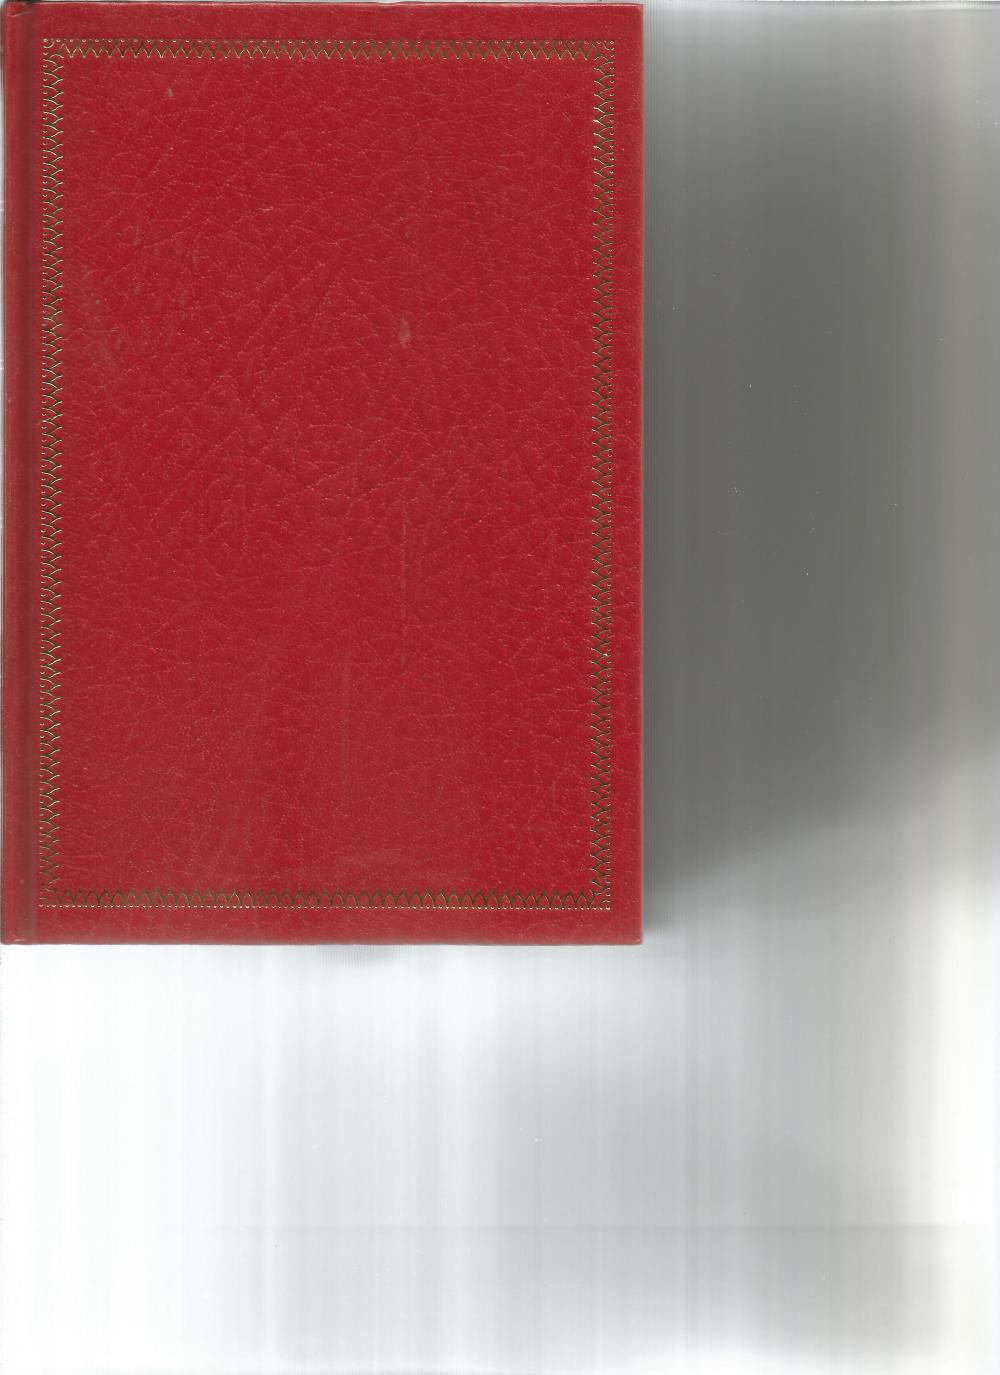 Readers Digest Condensed Books -Sea Lord by Bernard Cornwall, Doctors by Erich Segal, Gracie by